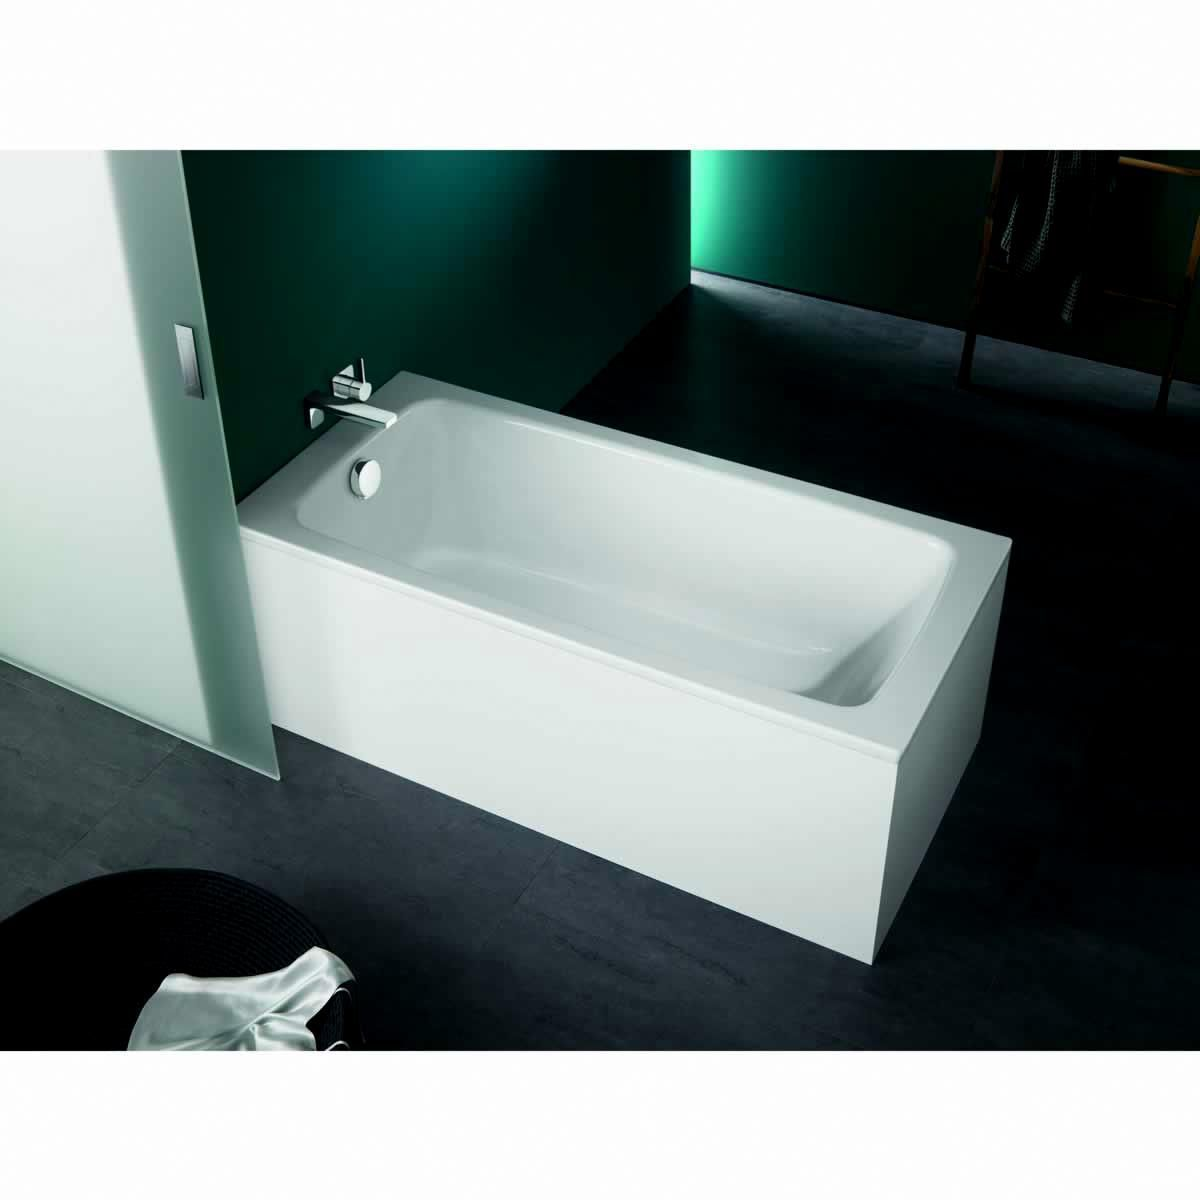 Kaldewei Cayono Luxury Steel Bath | Bathrooms Direct Yorkshire